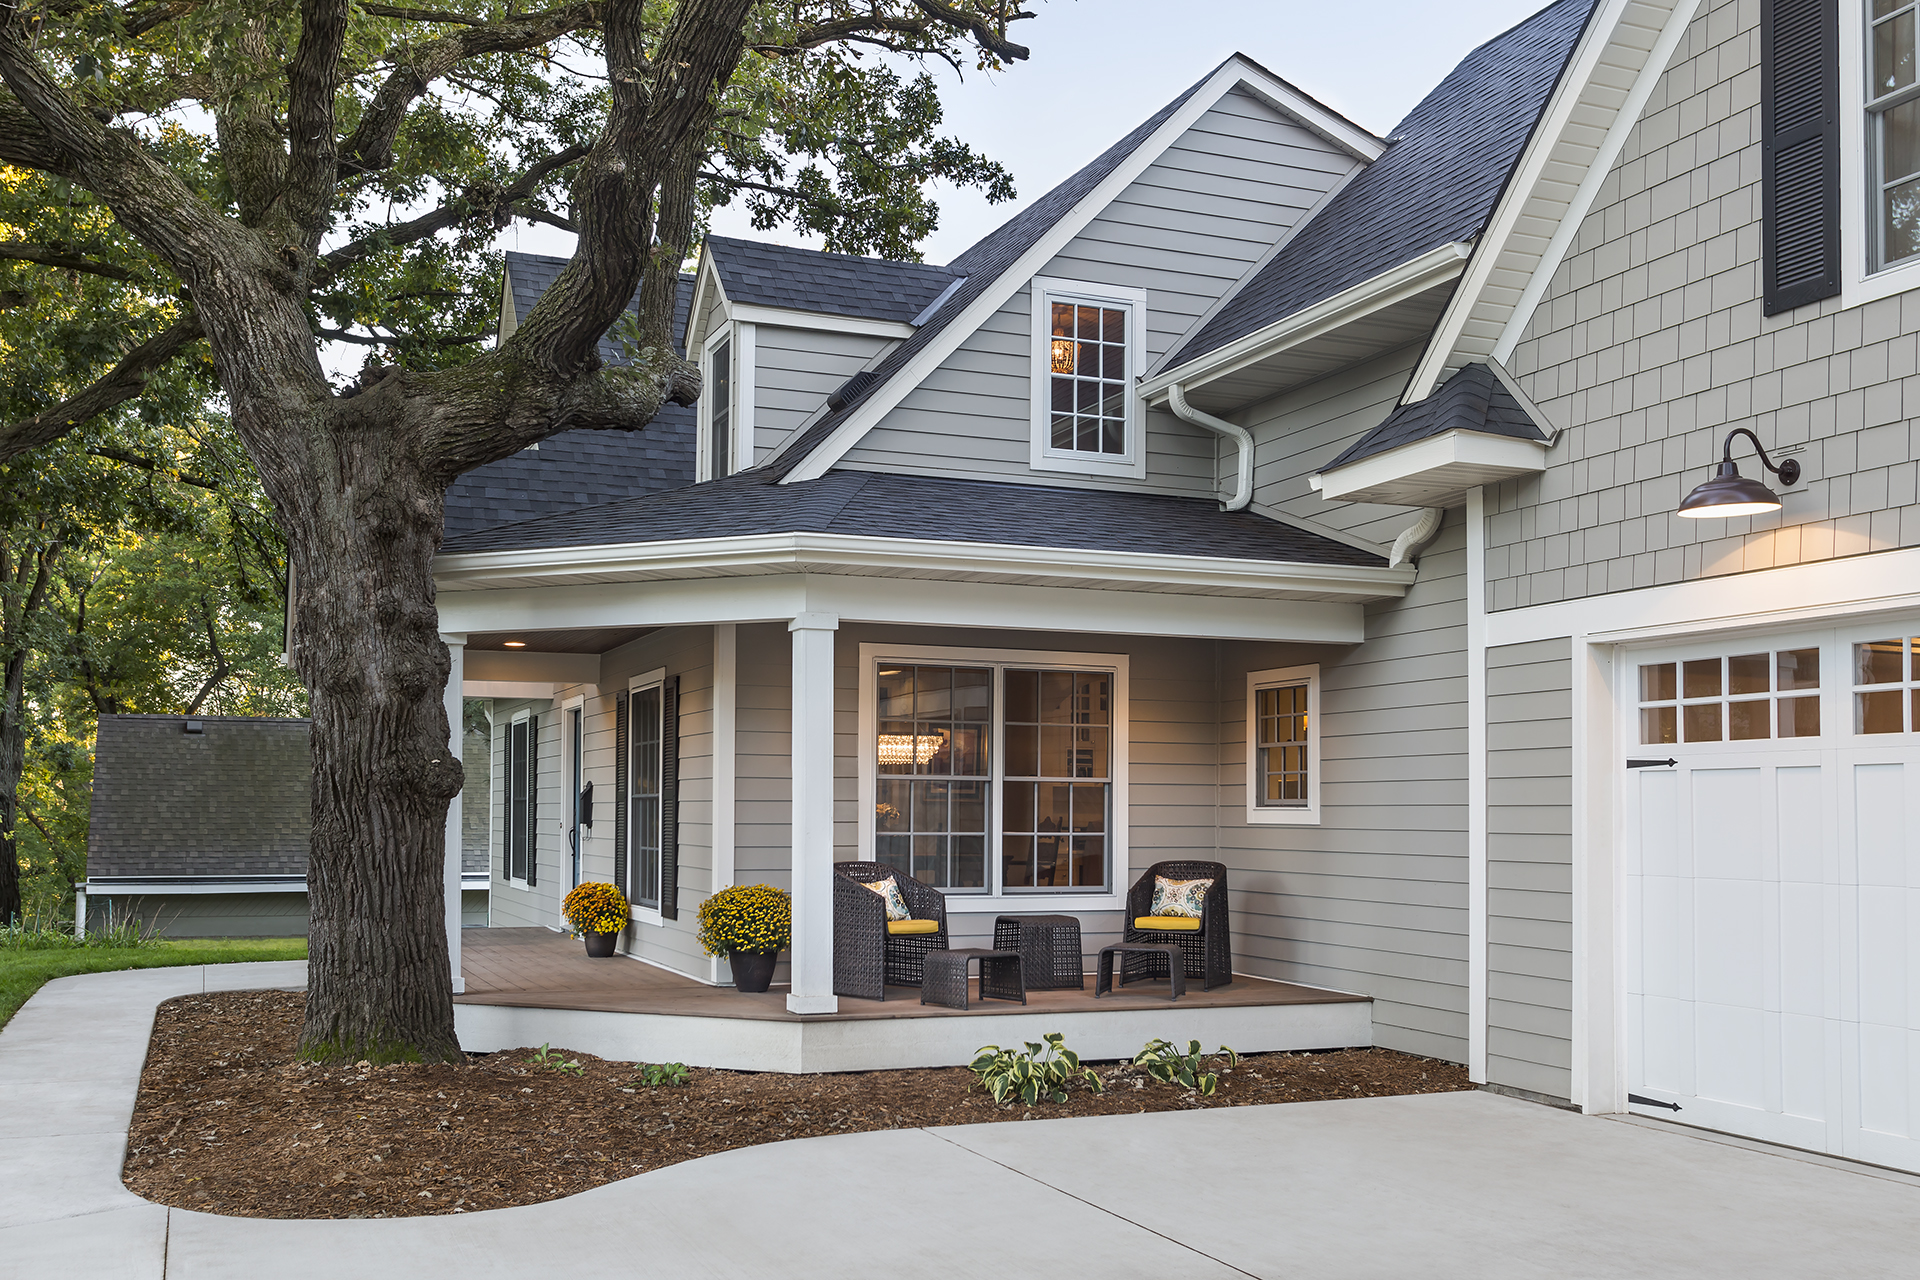 House_FrontPorch_Angle_2016_09_19.jpg